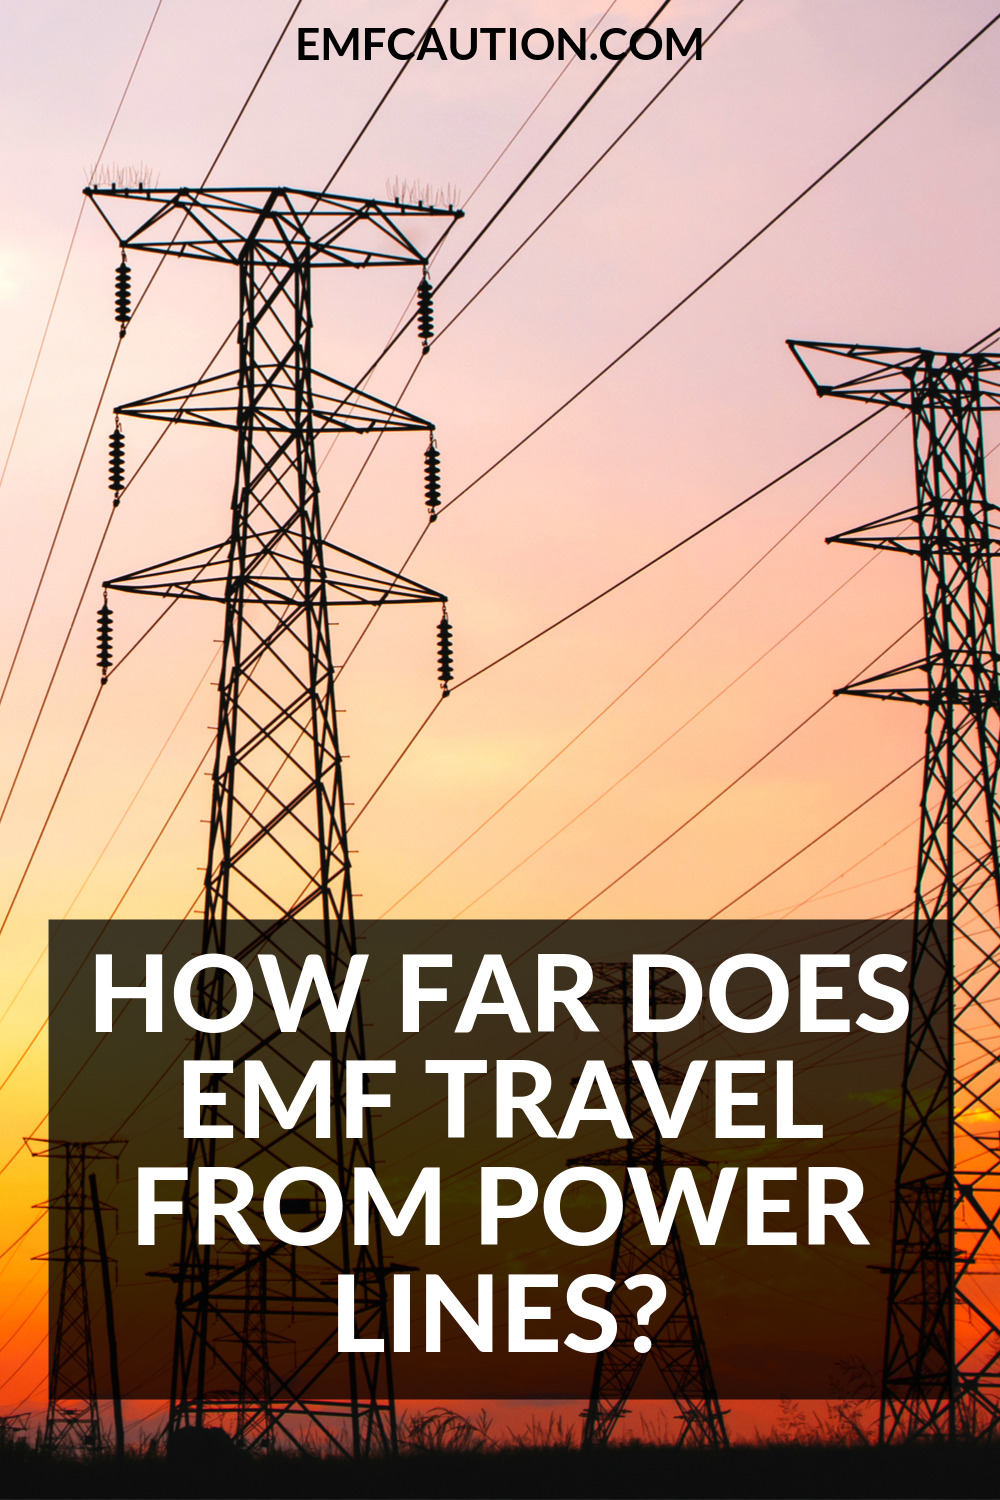 How Far Does Emf Travel From Power Lines